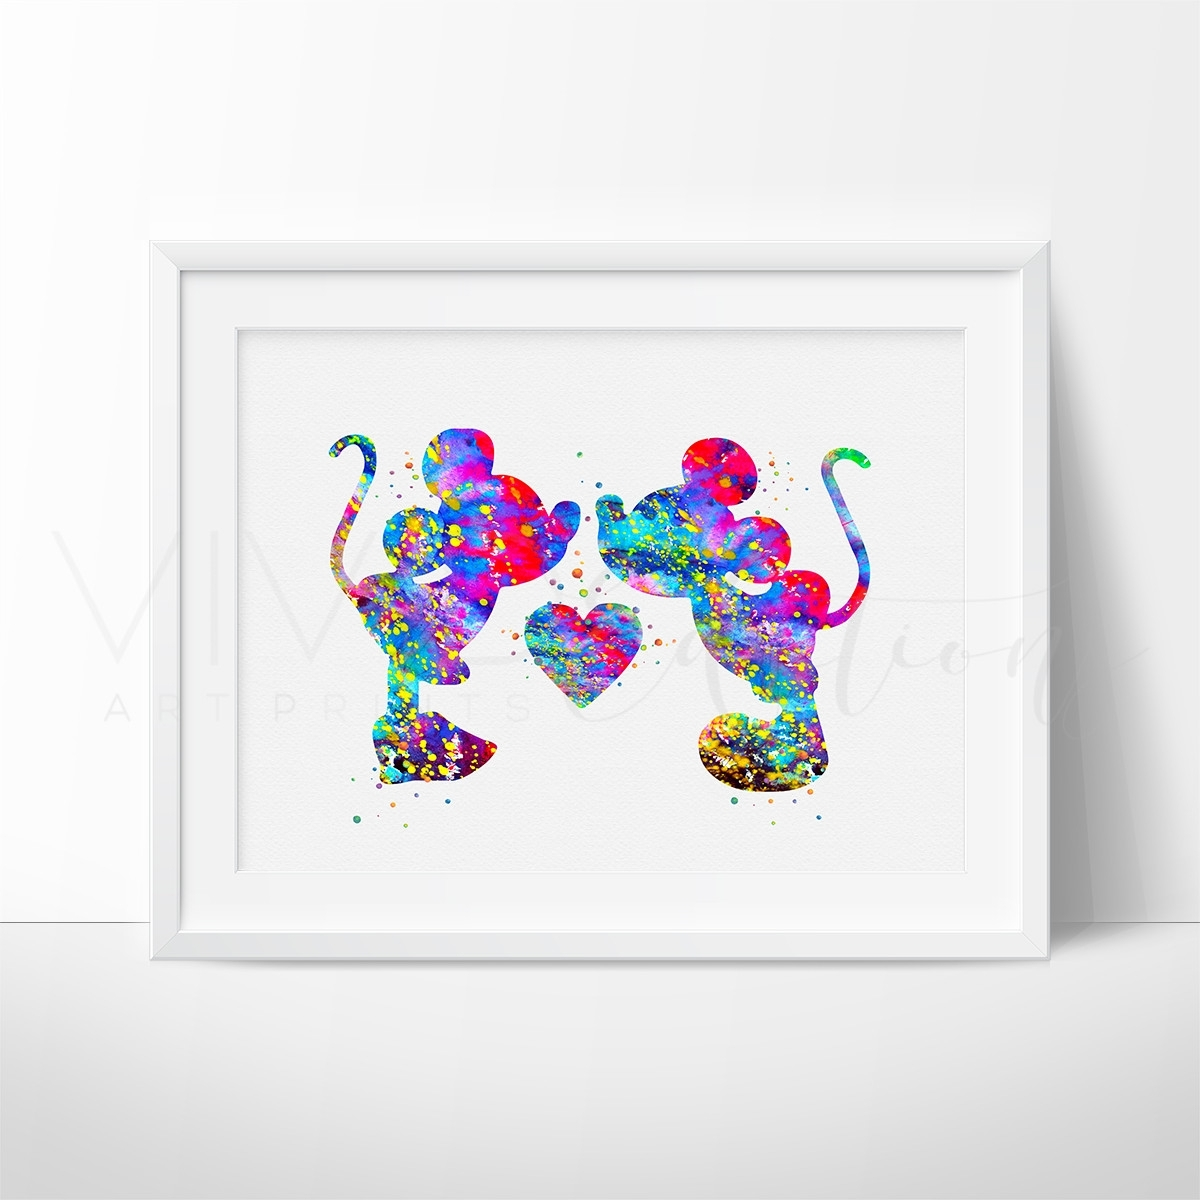 Mickey & Minnie Mouse Watercolor Art Print | Watercolor Images Within Best And Newest Mickey Mouse Canvas Wall Art (View 14 of 15)